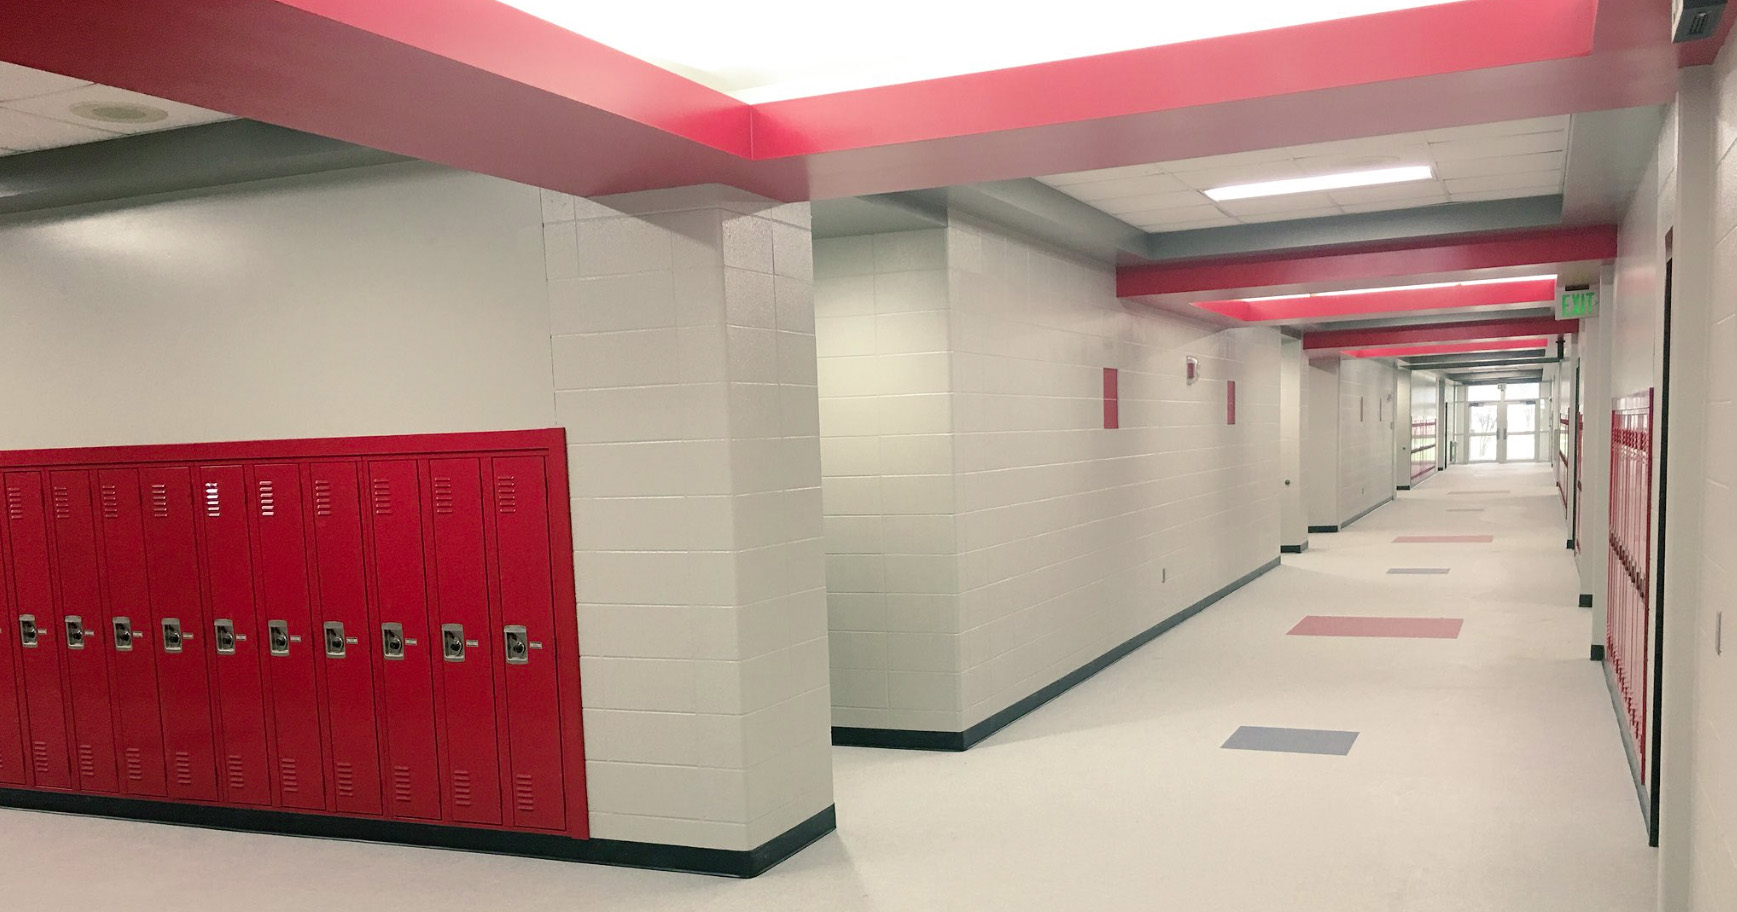 New Palestine Junior High